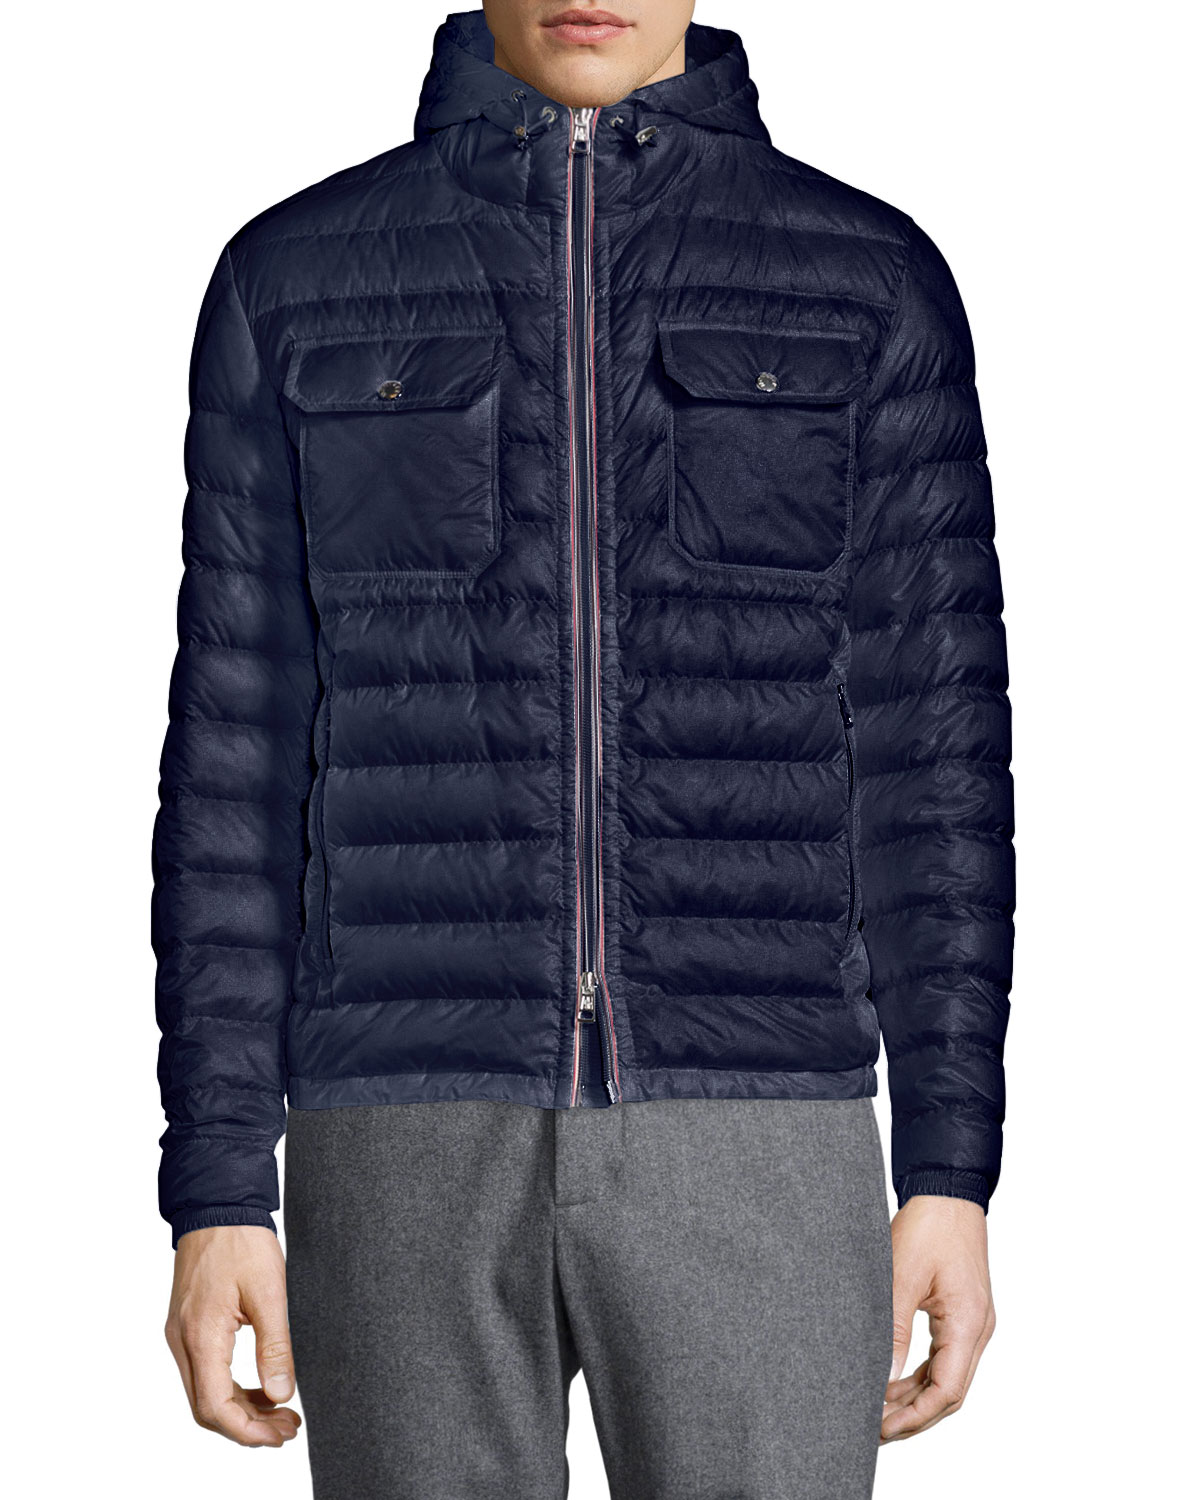 fa7a1330f Douret Quilted Nylon Jacket with Hood, Navy